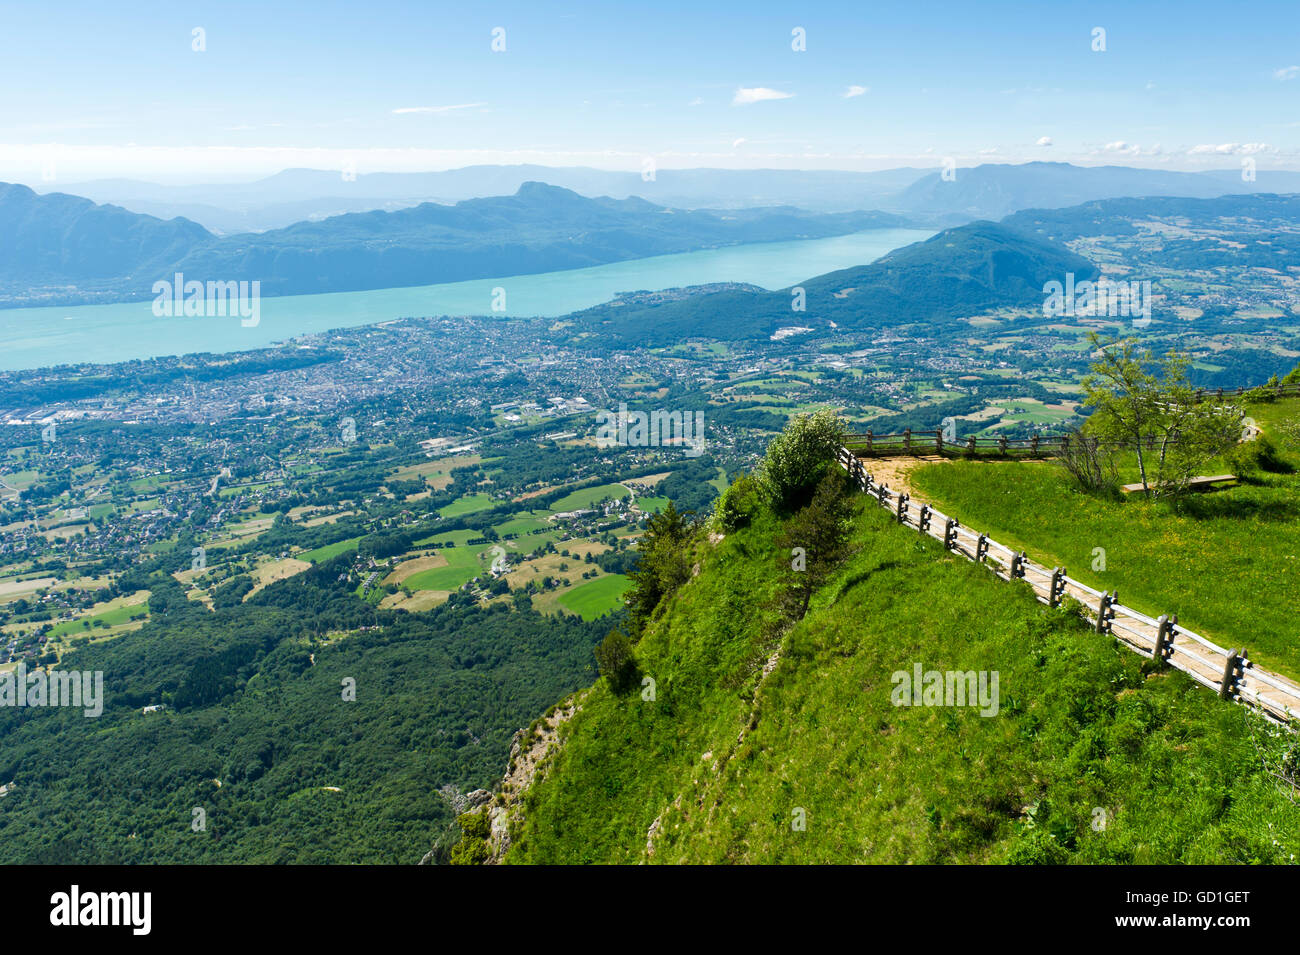 Aix les bains and lac du bourget from the viewpoint on mont revard stock photo royalty free - Meteo bourget du lac ...